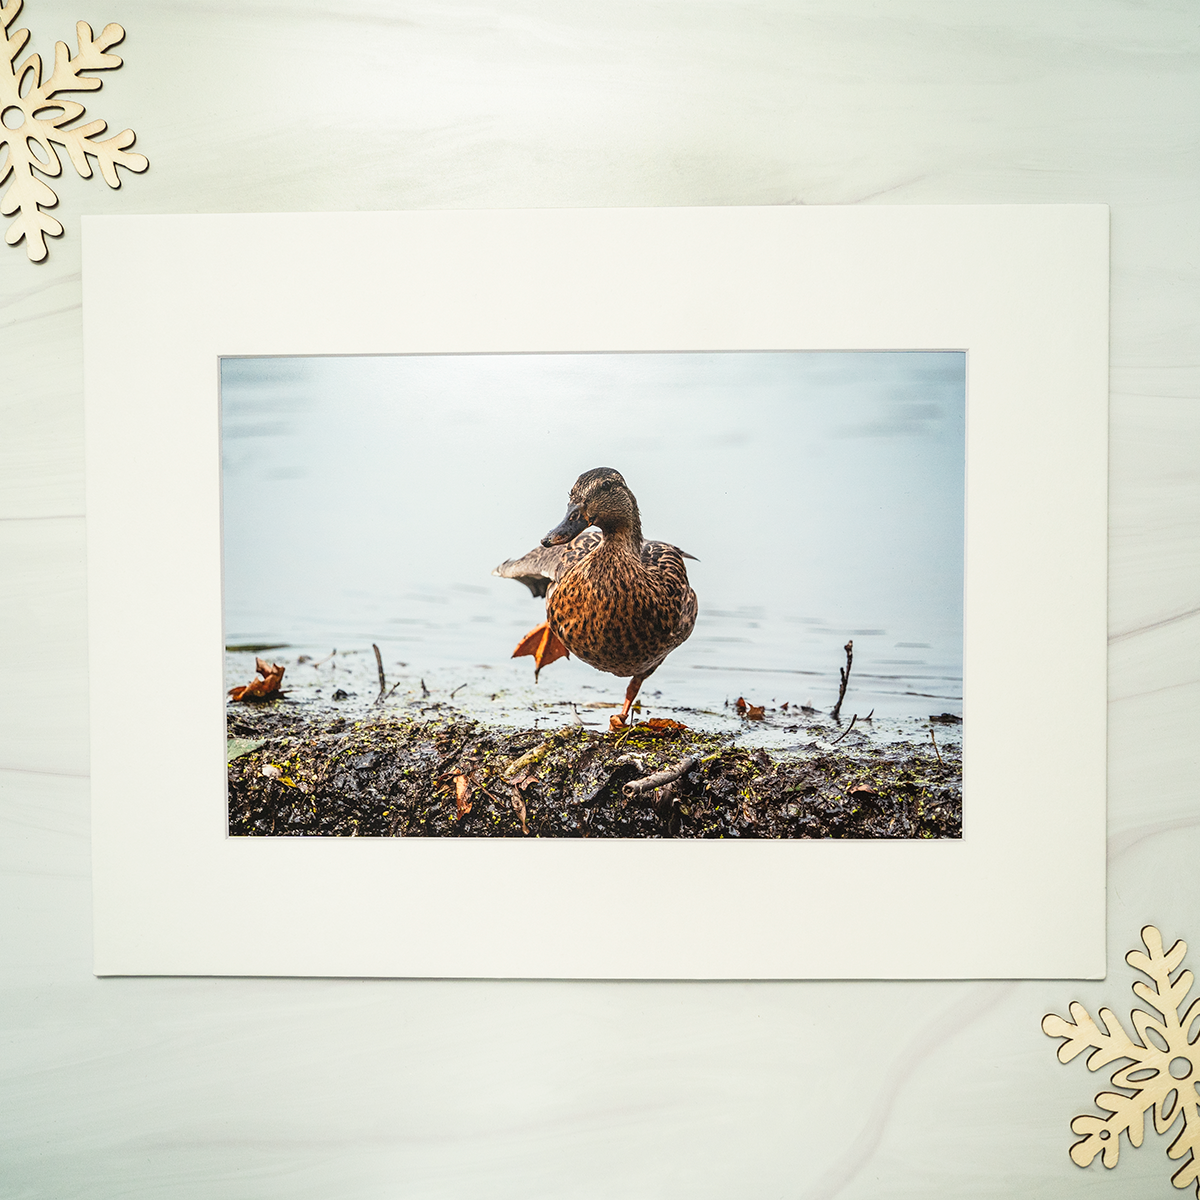 The Dance Photograph by Garett Southerton part of the Water Birds Collection